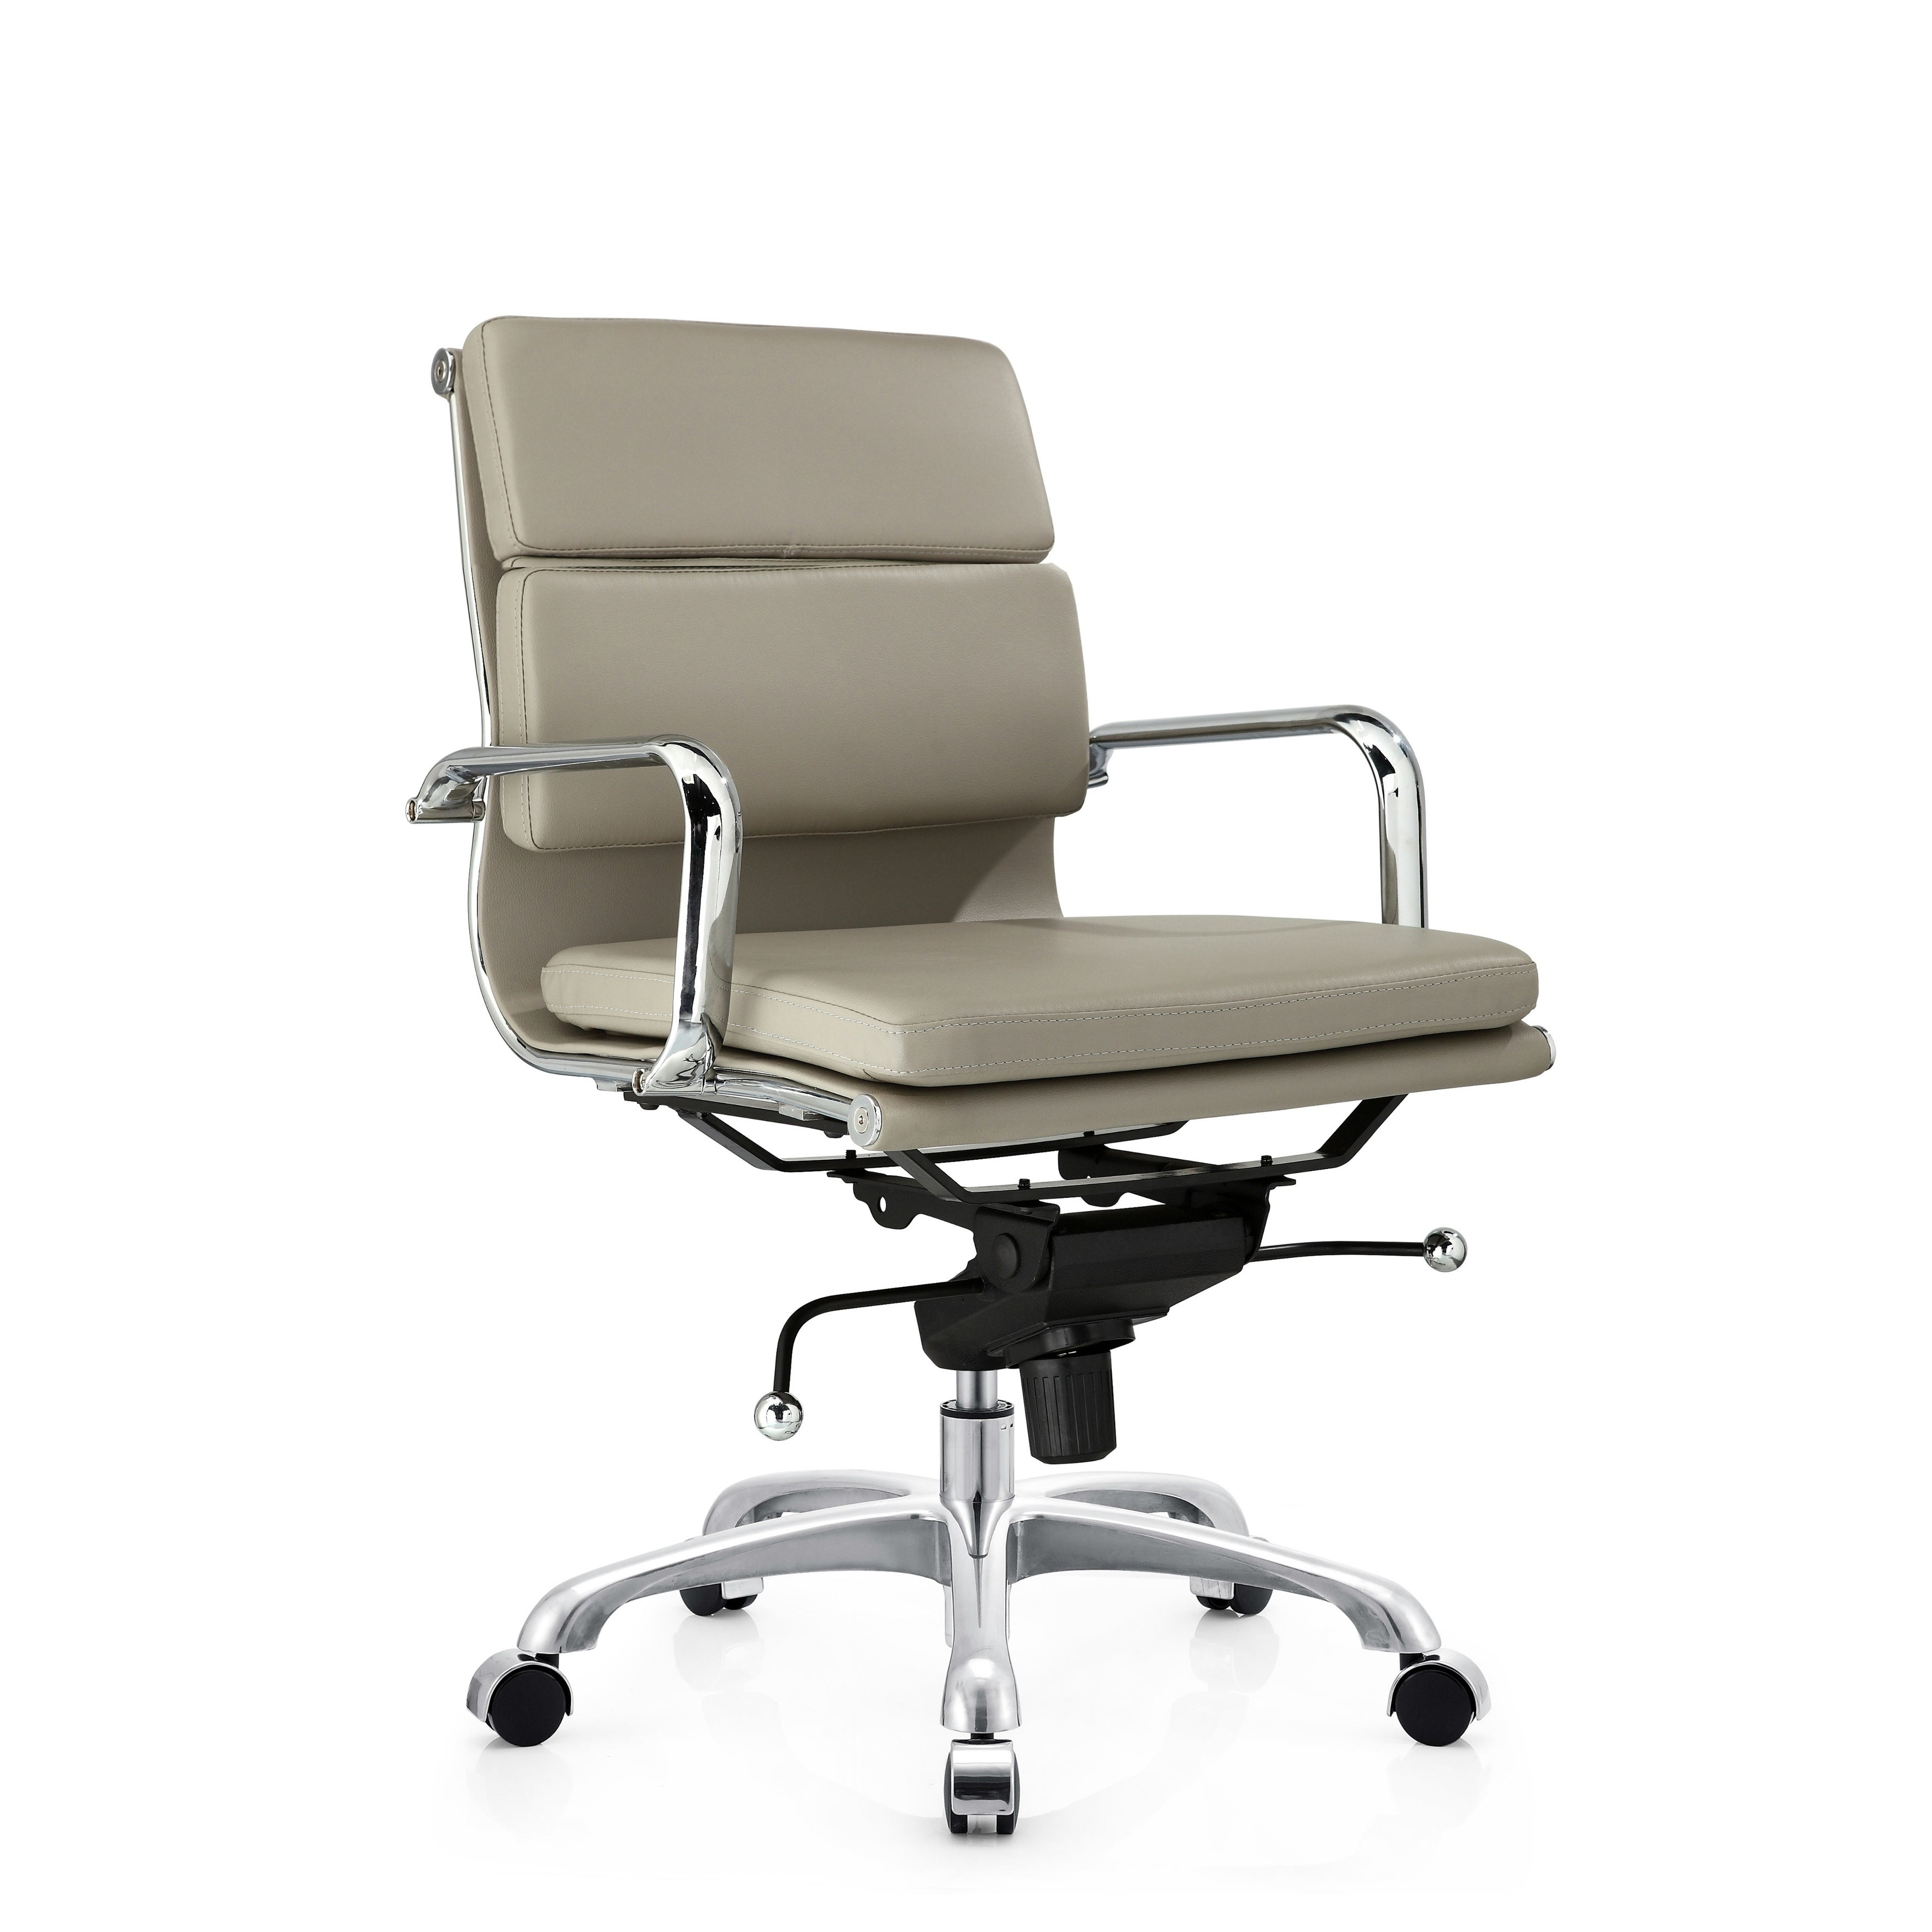 Grey PU leather low back Office chair